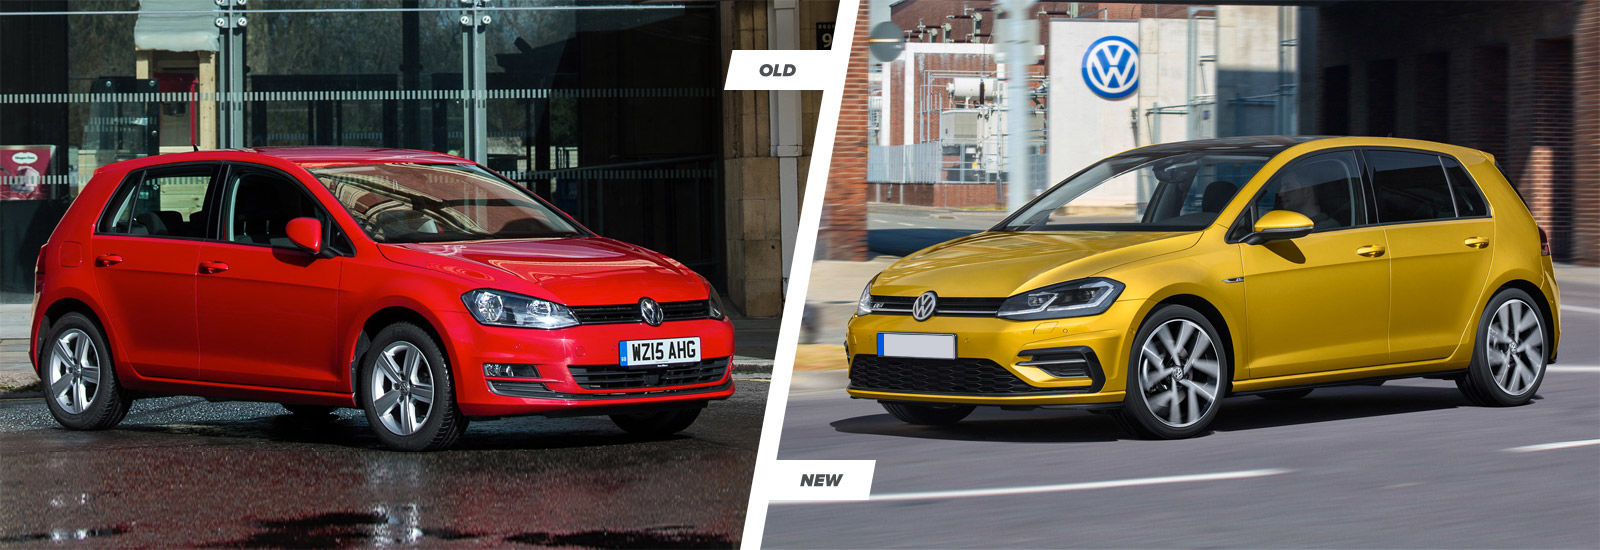 2017 Vw Golf Mk7 Facelift Old Vs New Compared Carwow